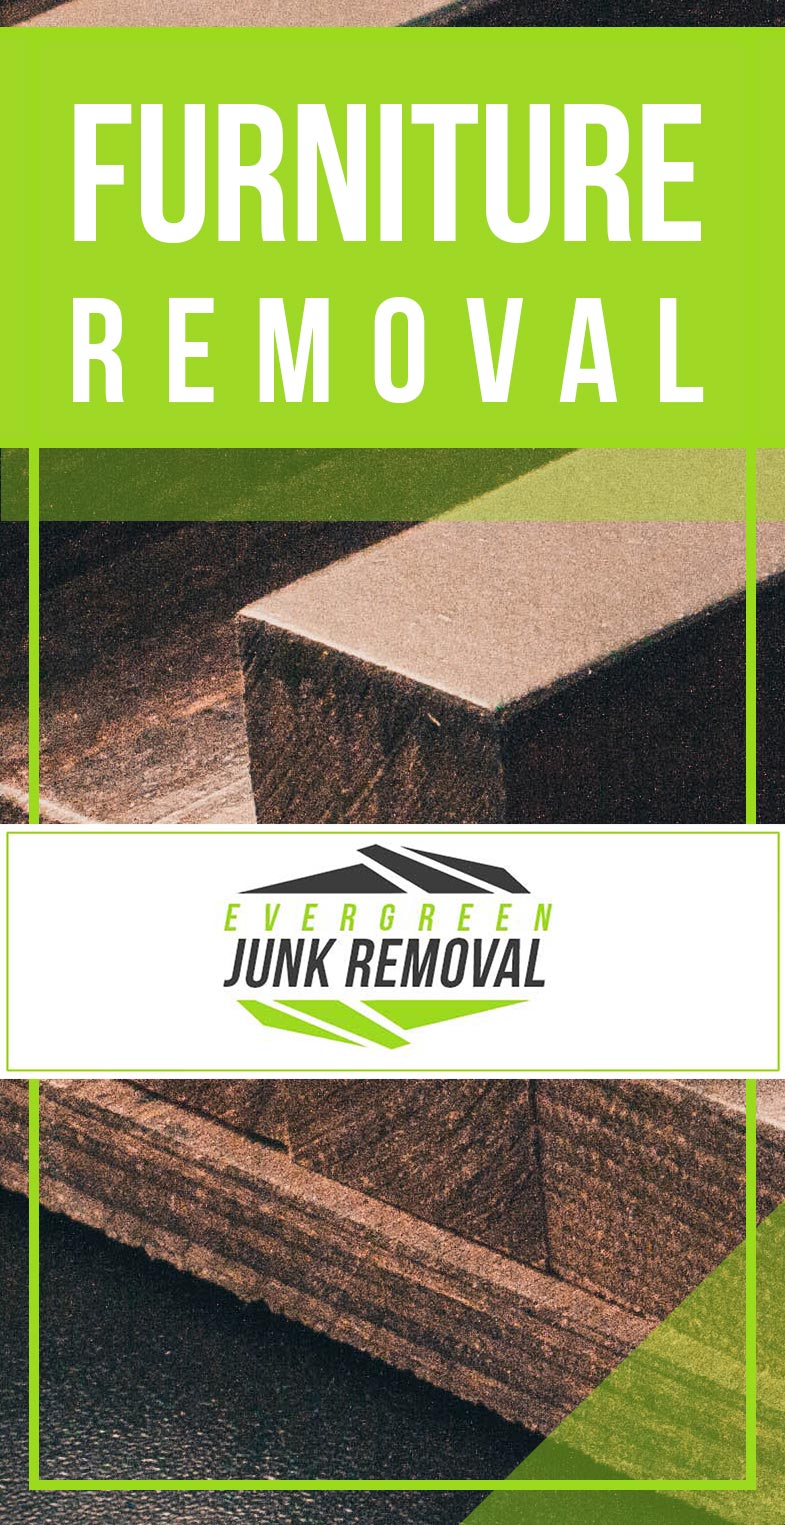 Mukilteo Furniture Removal